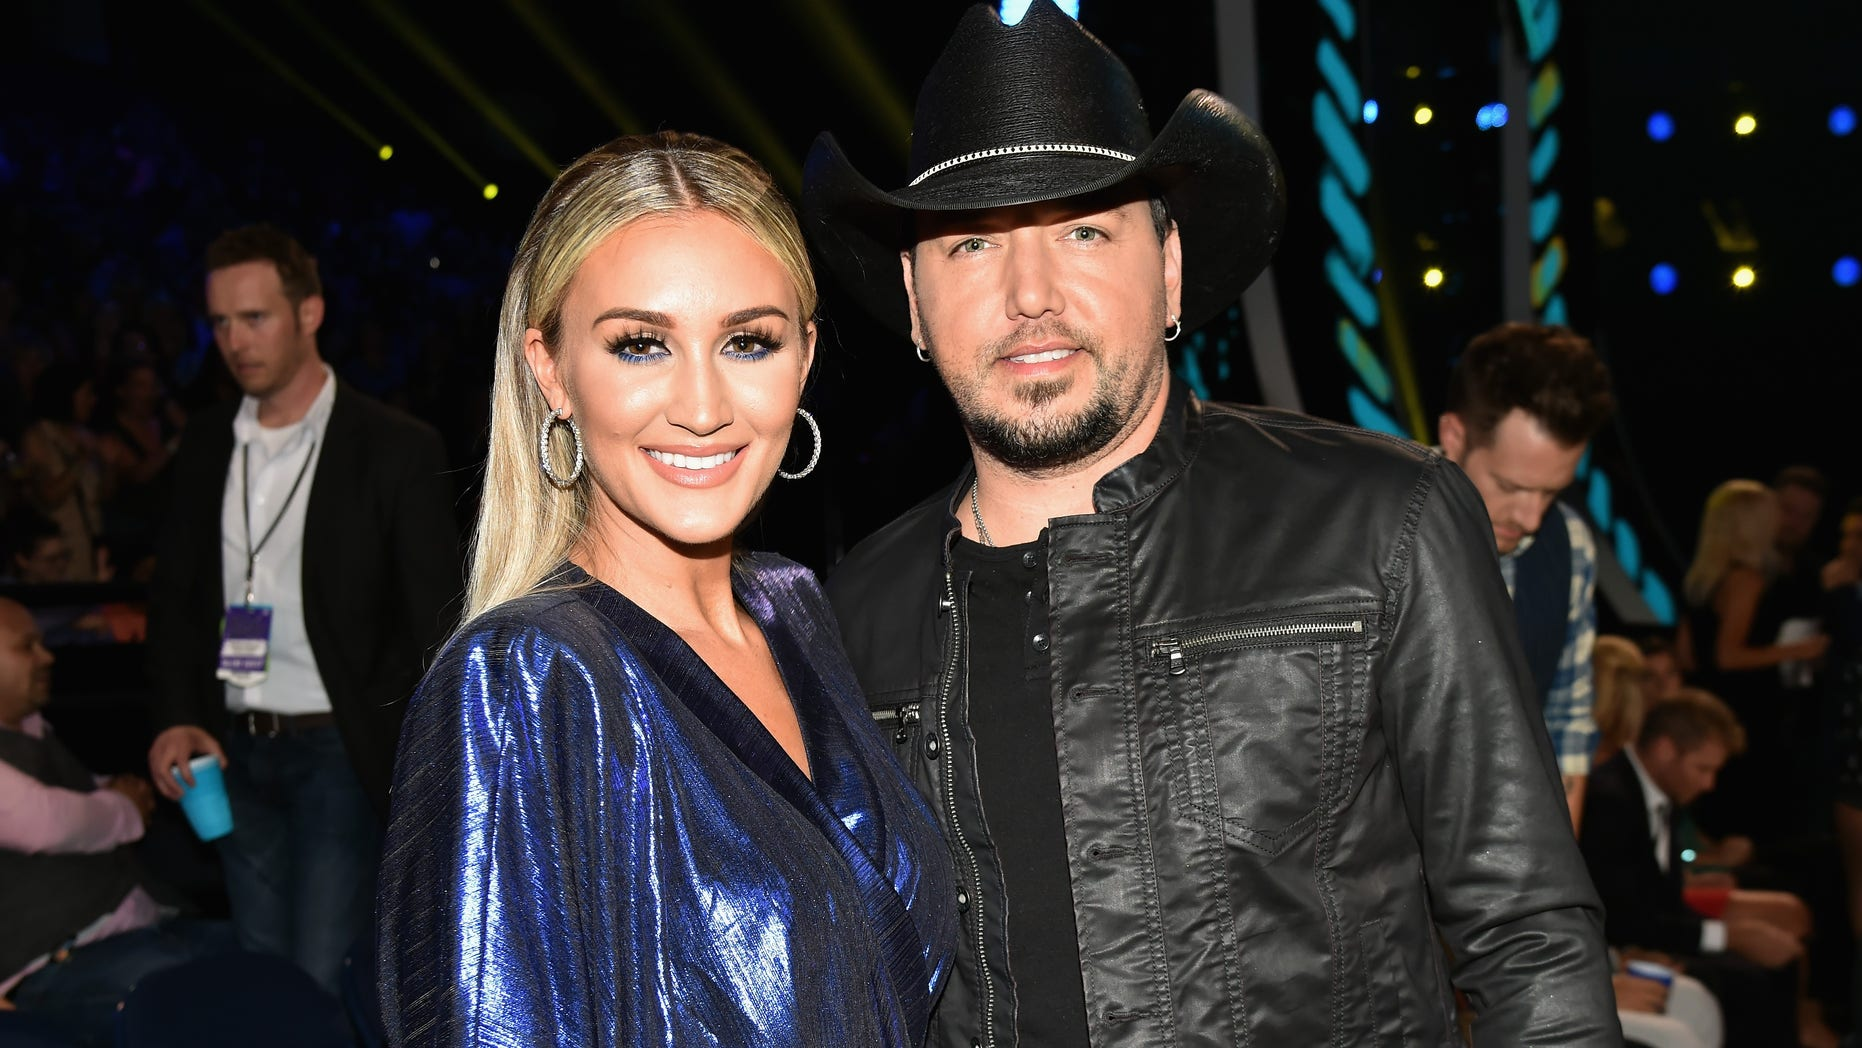 Jason Aldean and Wife Brittany Reveal Their Unborn Daughter's Name